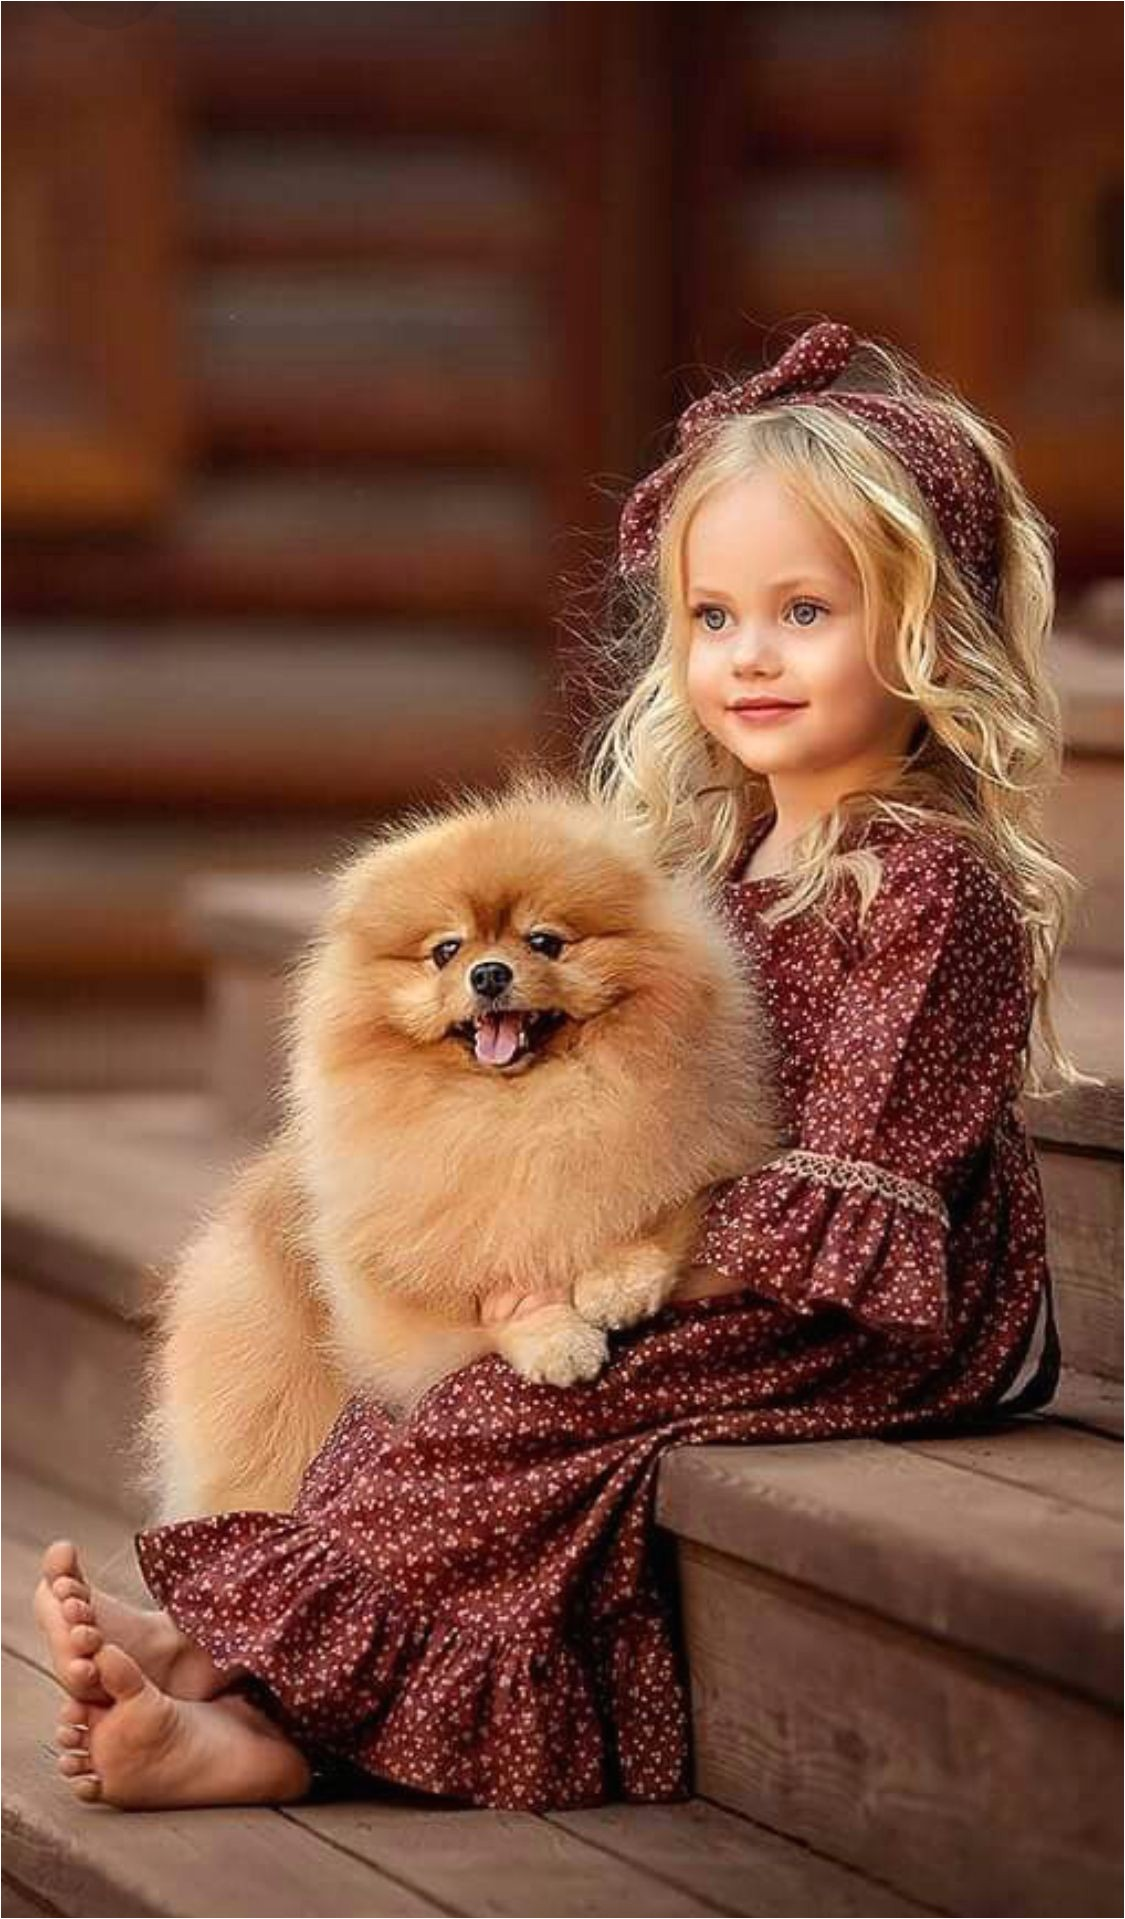 cute and pretty pet with kid